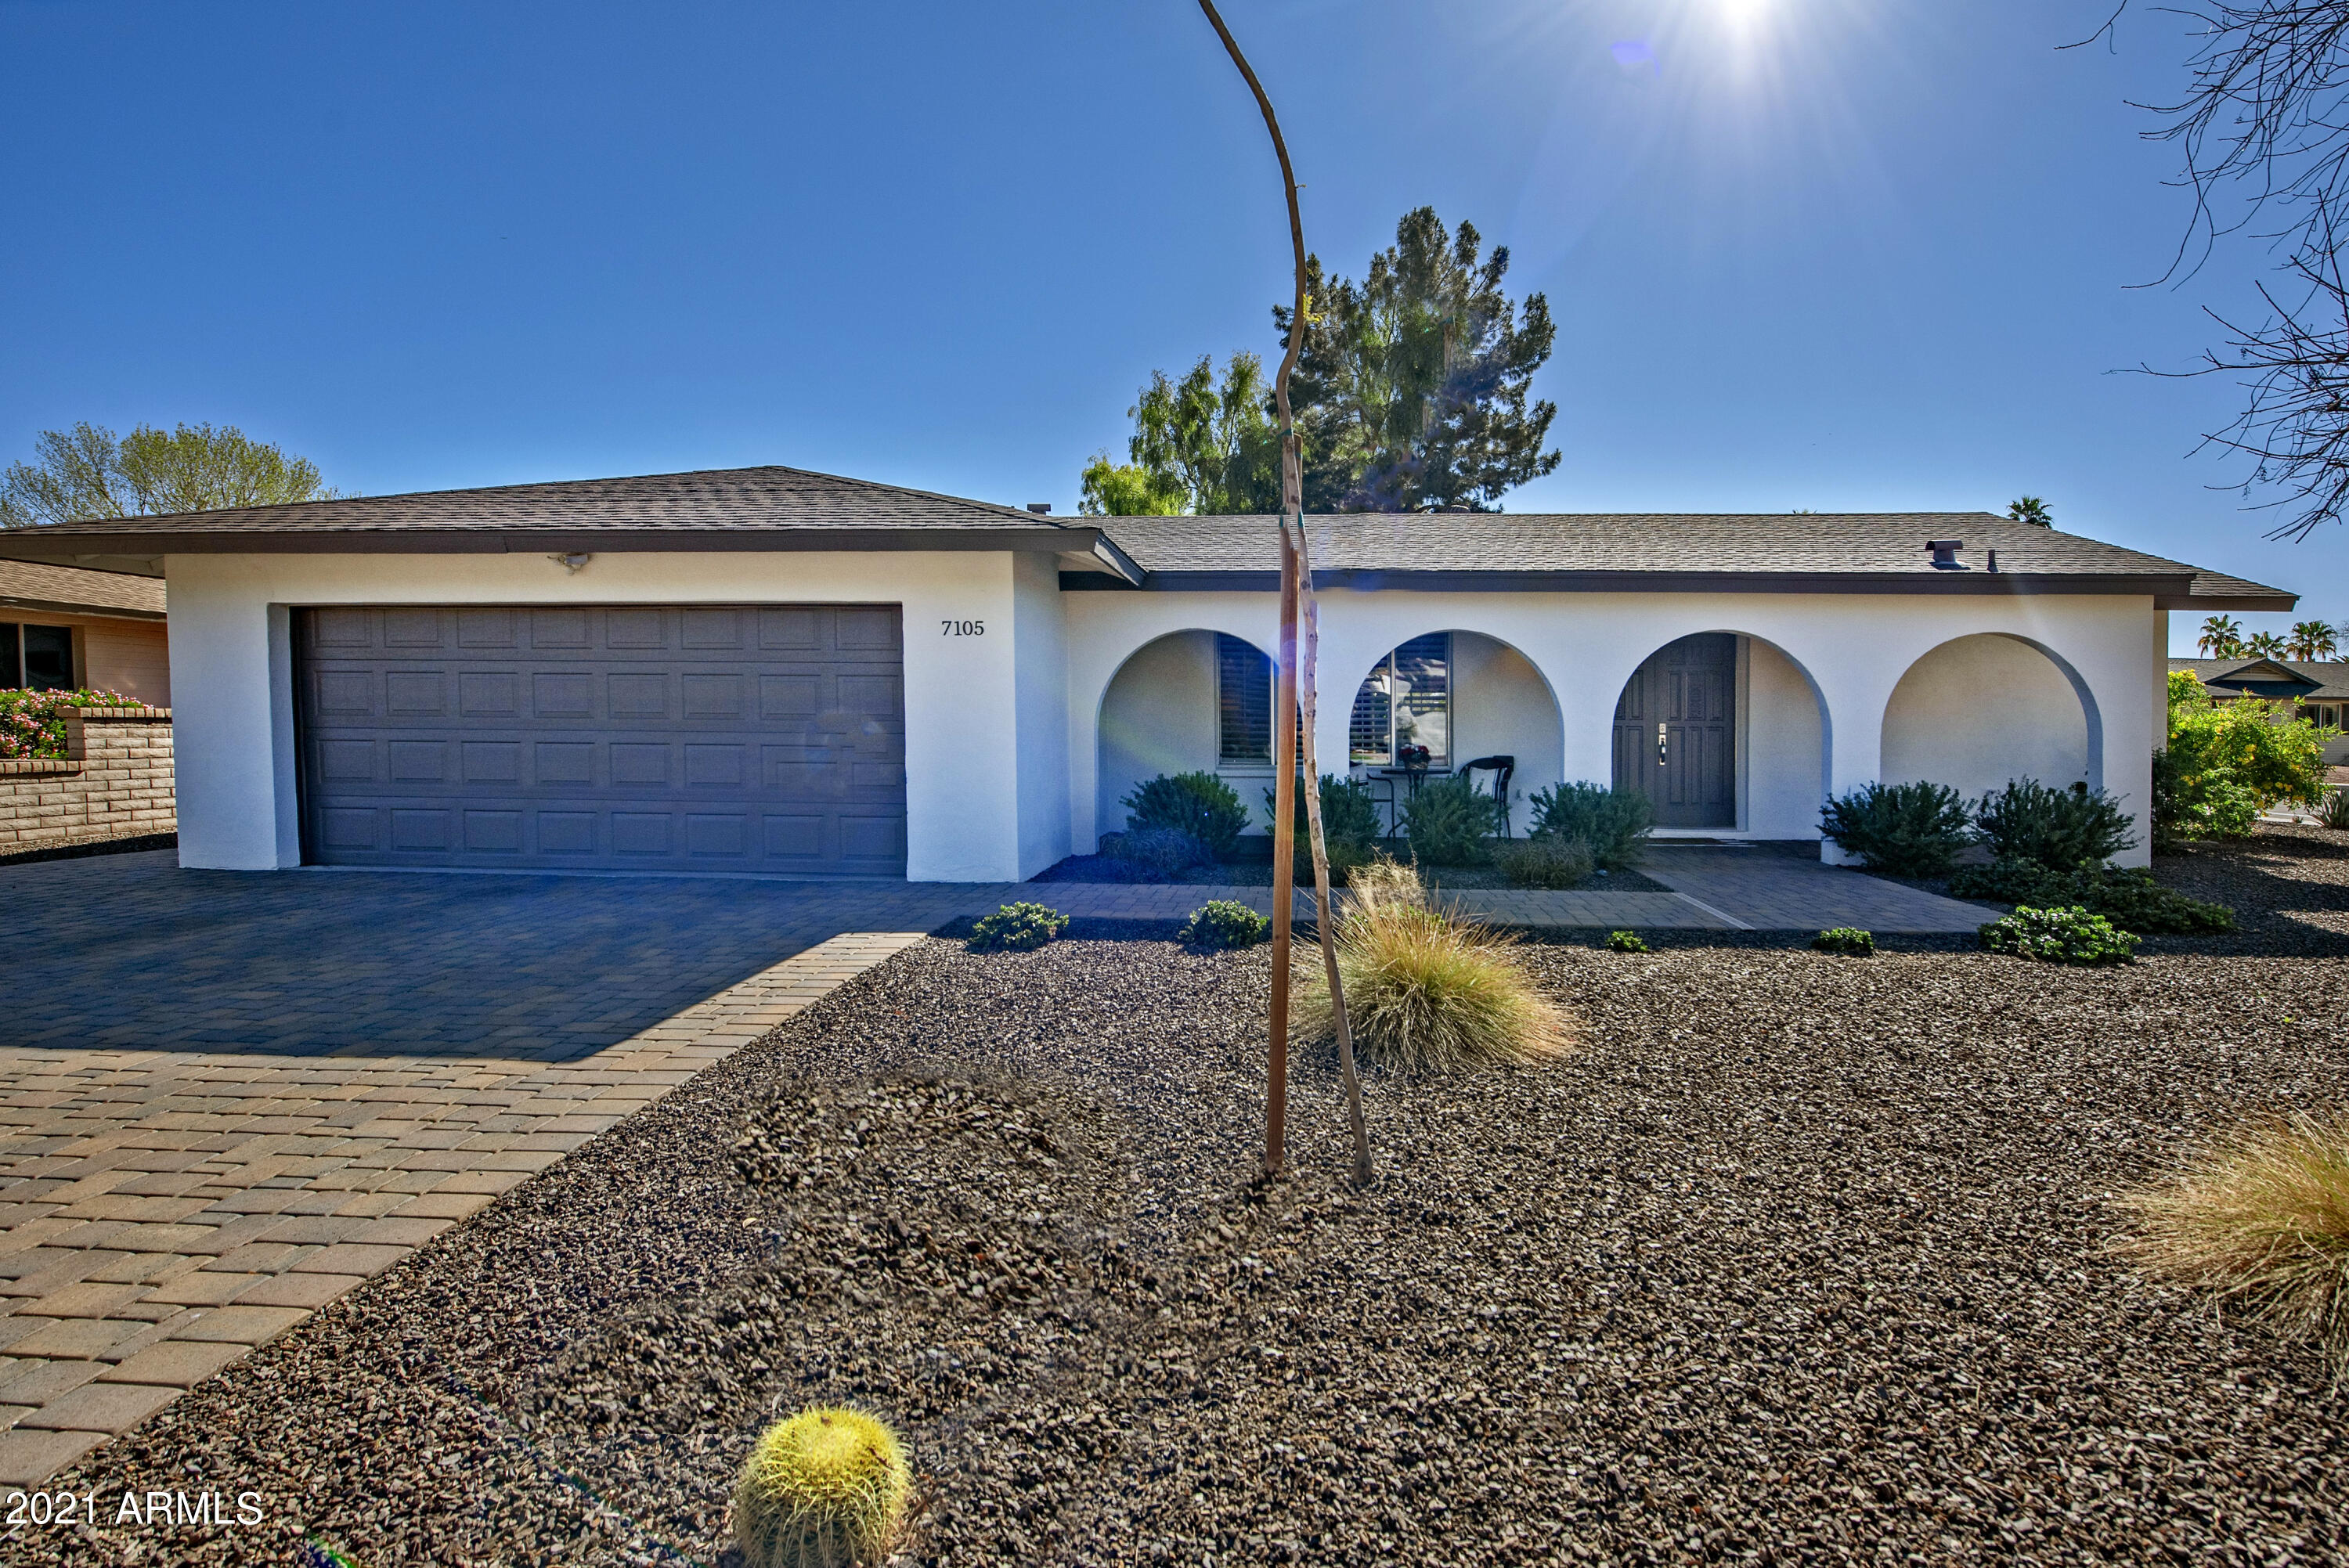 This beautifully updated home offers the very best in McCormick Ranch living - a quiet and meticulously maintained neighborhood, nearby parks and walking trails, great local dining and shopping, and easy access to Loop 101 freeway, Talking Stick Resort, and Old Town Scottsdale! The stunning interior features are sure to please the modern buyer and include an open concept, 2 living spaces, white shaker-style cabinetry, granite countertops, subway tile backsplashes, stainless steel appliances, and timeless wainscoting. The home sits on an oversized corner lot, making the backyard incredibly spacious and perfect for entertaining guests. Enjoy a lengthy covered patio w/ mist system, a fenced Pebble Tec pool, and low maintenance turf. Ample storage, spacious master with walk-in closet and more!